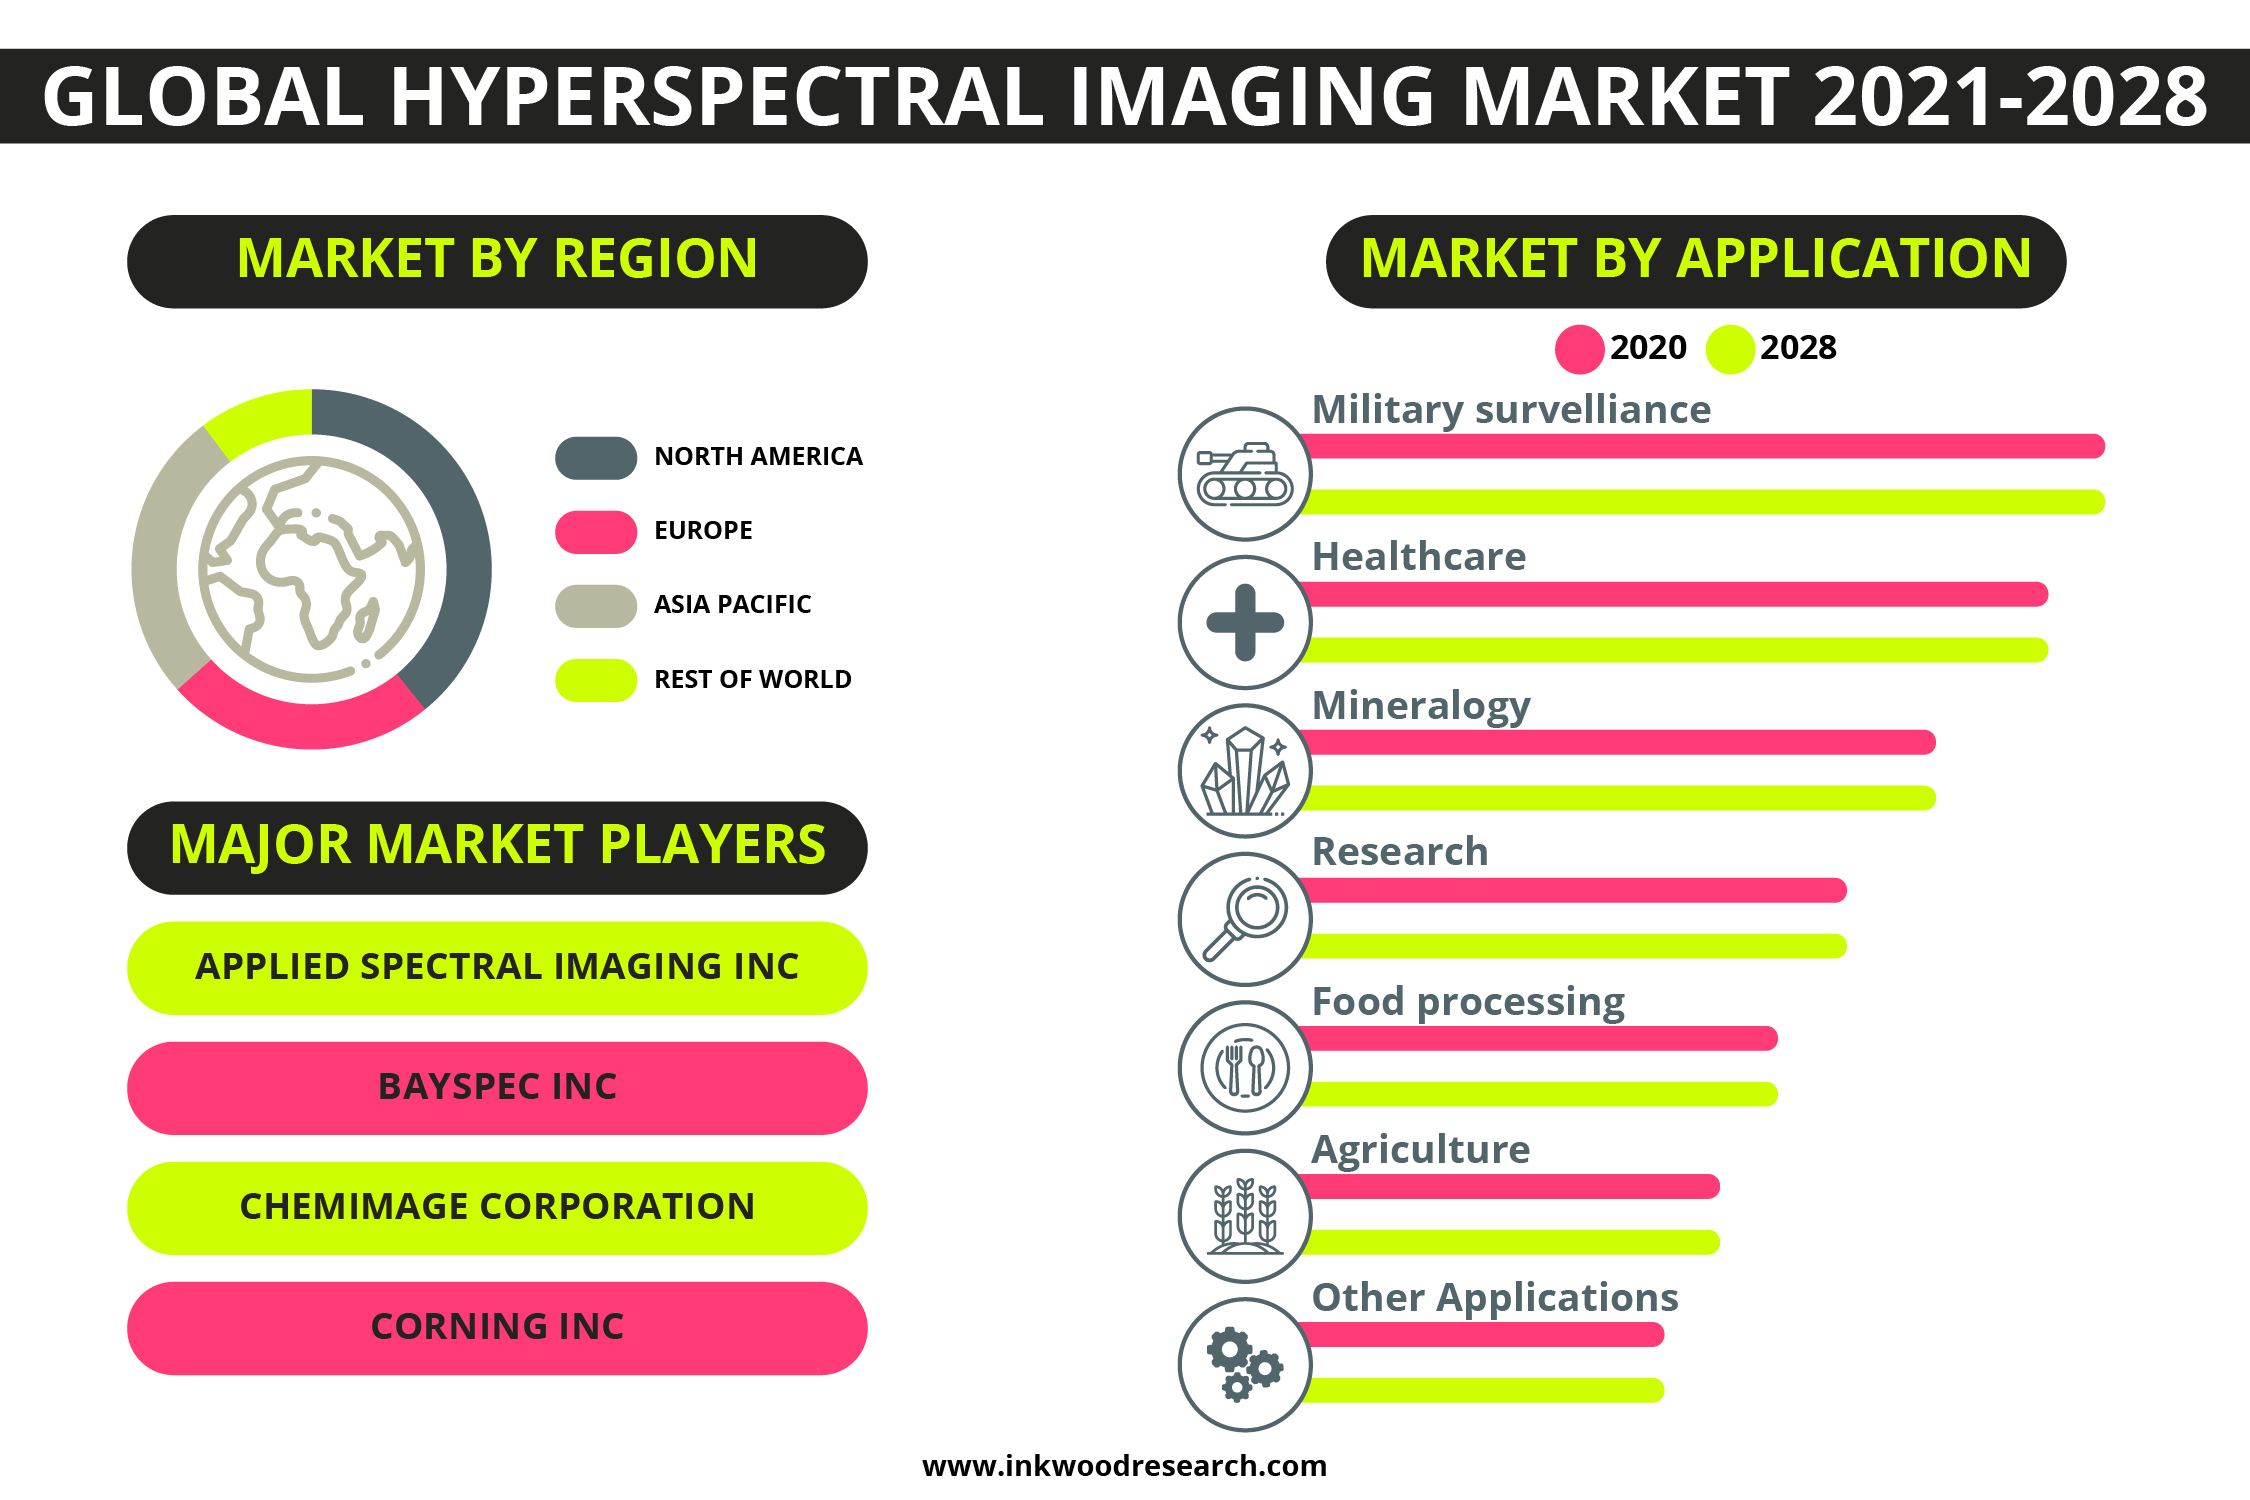 Technological Advancements to push Growth in the Global Hyperspectral Imaging Market